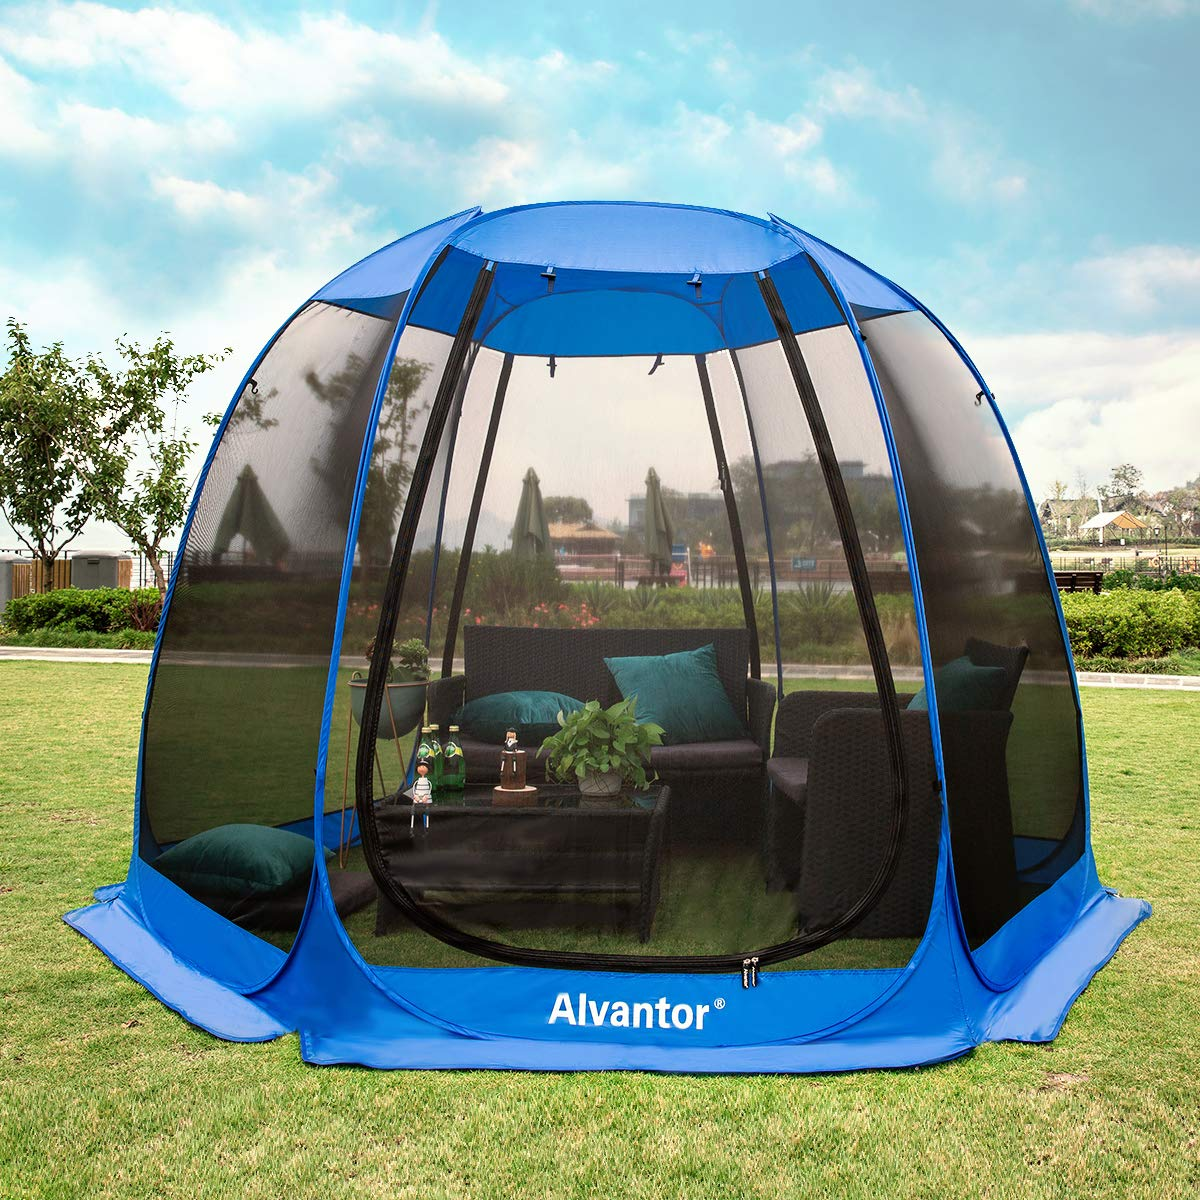 Alvantor Screen House Room Camping Tent Outdoor Canopy Dining Gazebo Pop Up Sun Shade Hexagon Shelter Mesh Walls Not Waterproof 10'x10'x7' Patent by Alvantor